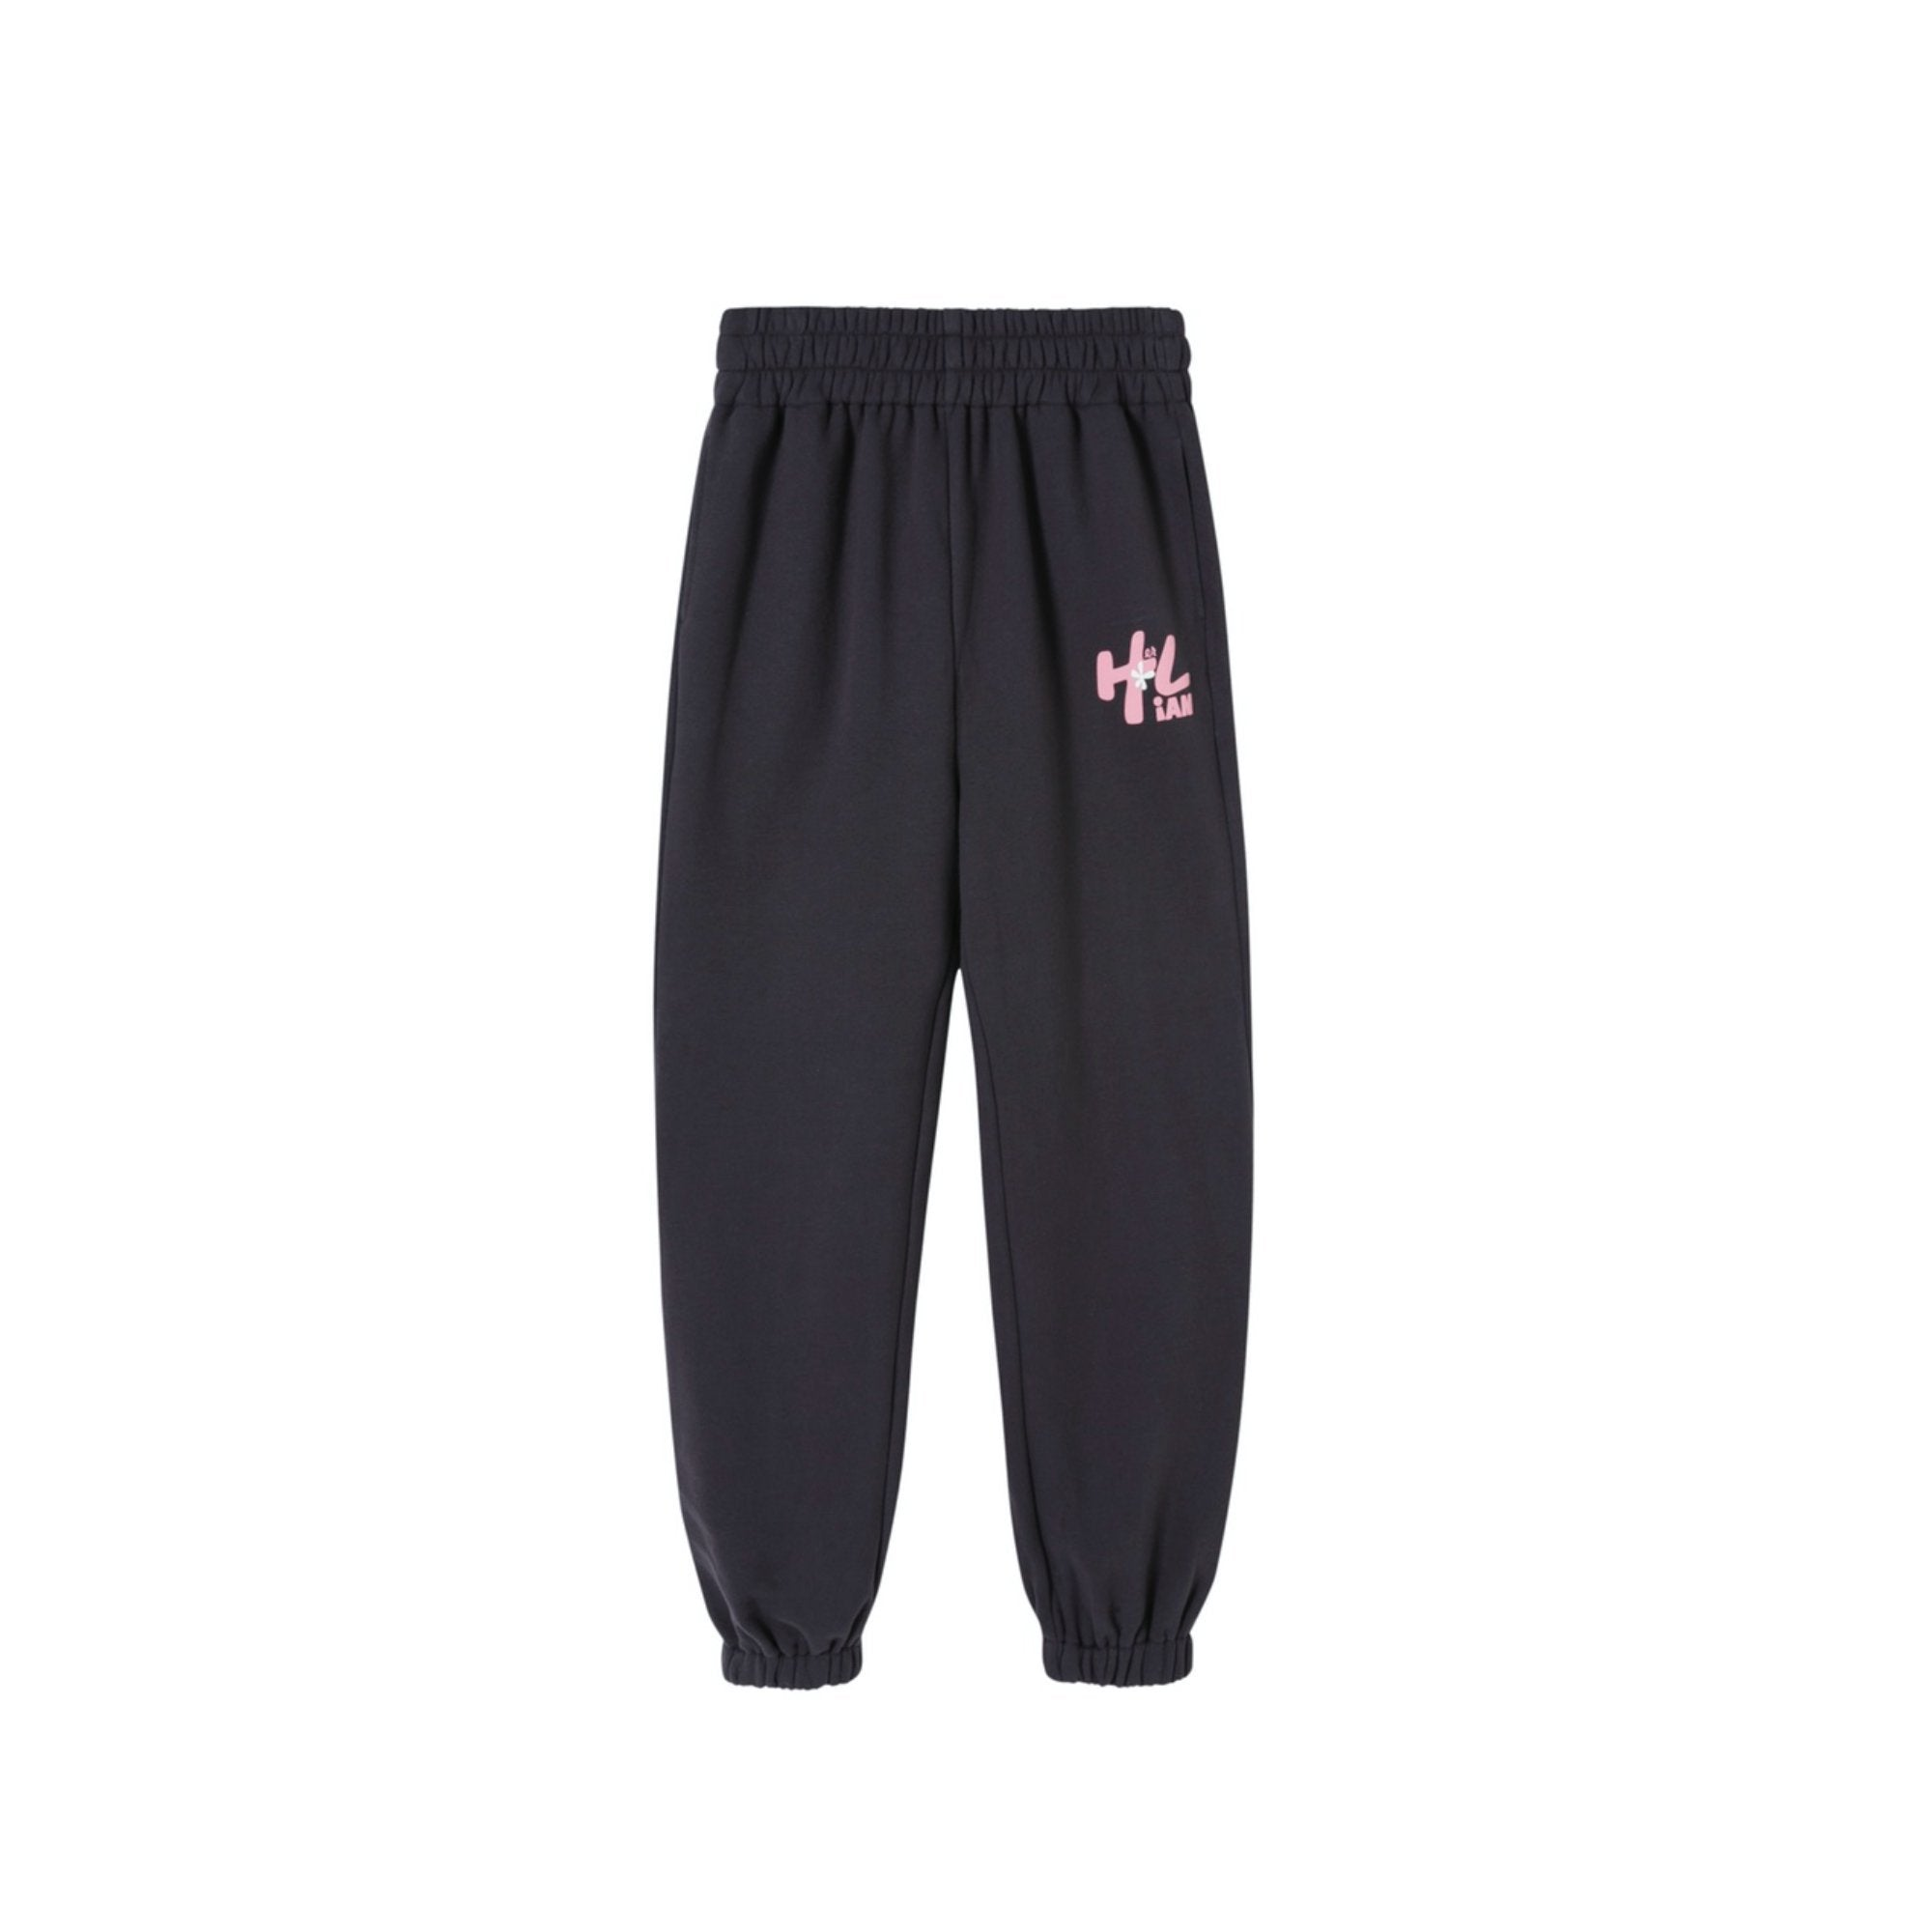 HERLIAN Black Logo Sweatpants | MADA IN CHINA